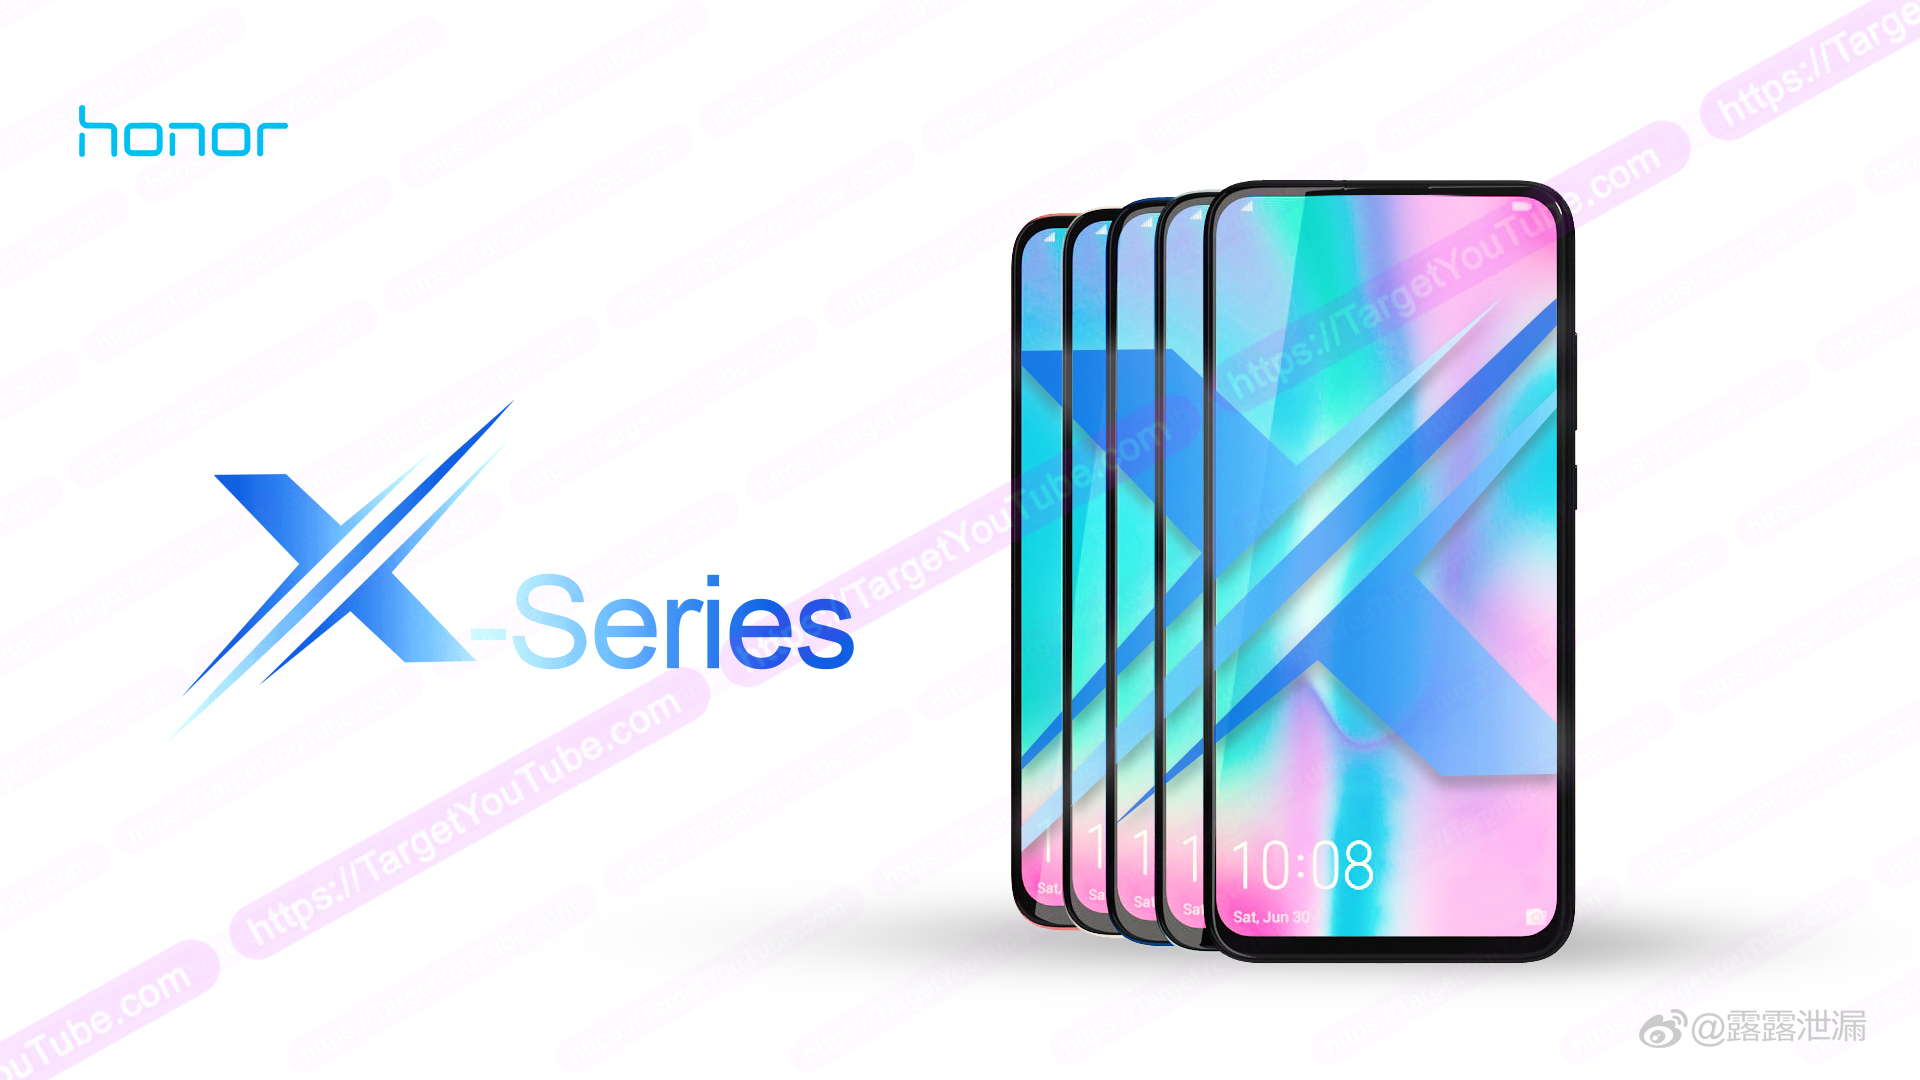 Chinese giant registers new trademarks for Honor X-Series smartphones